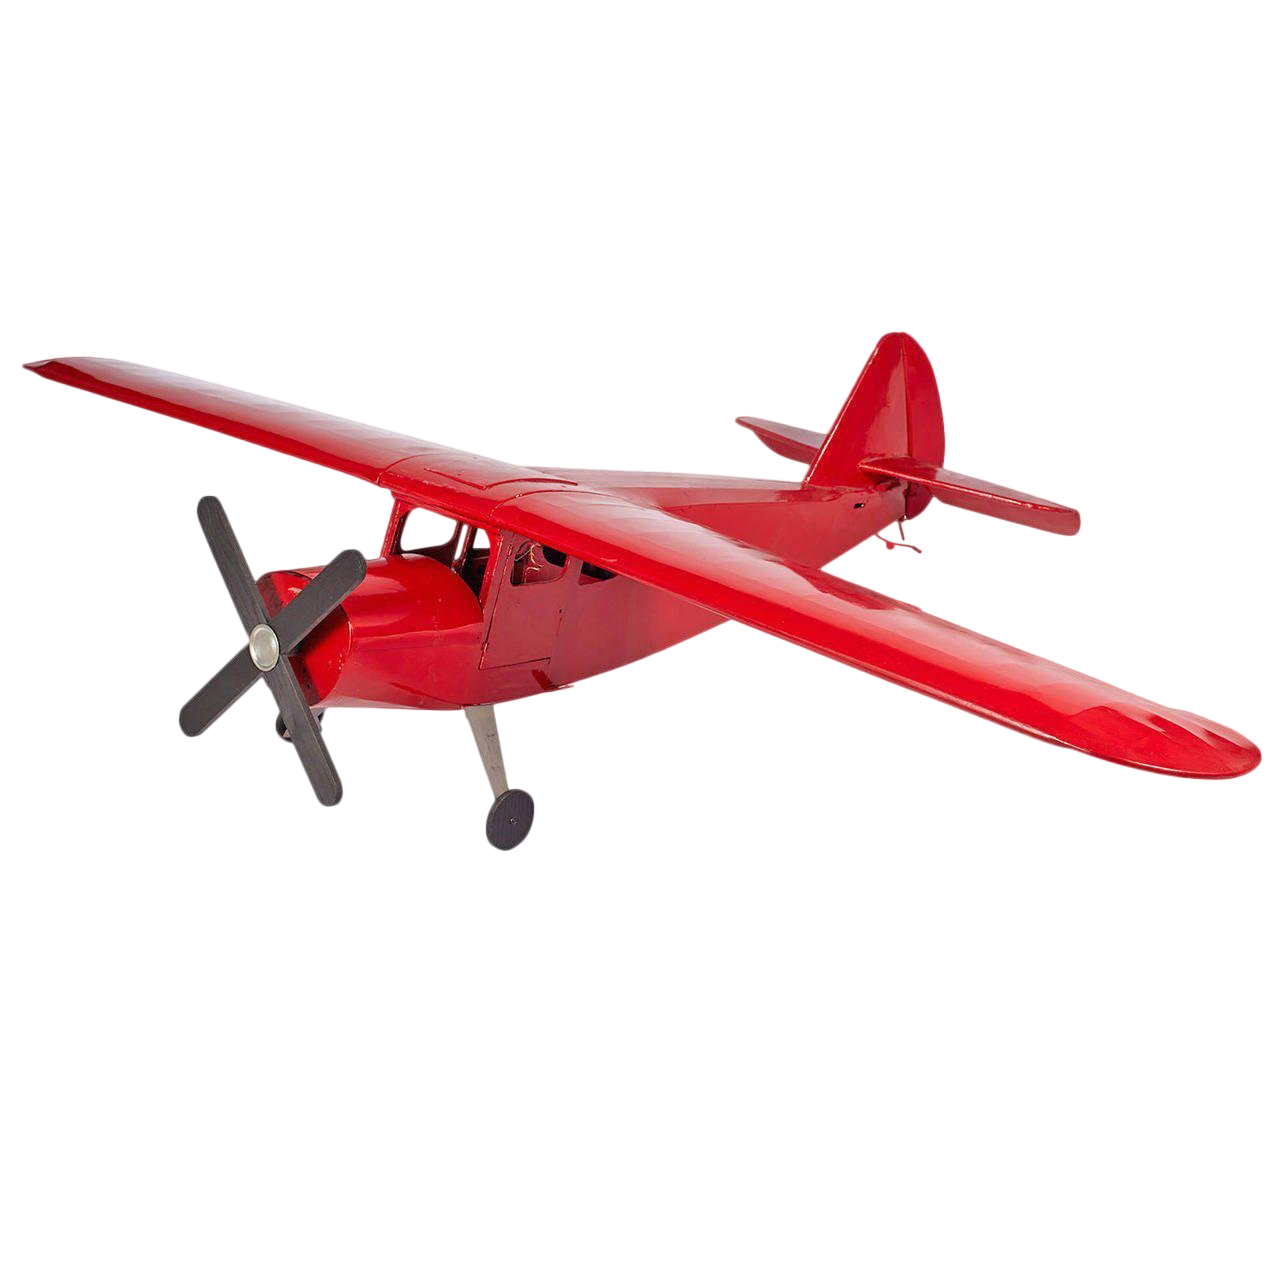 Large-Scale Red Airplane Model